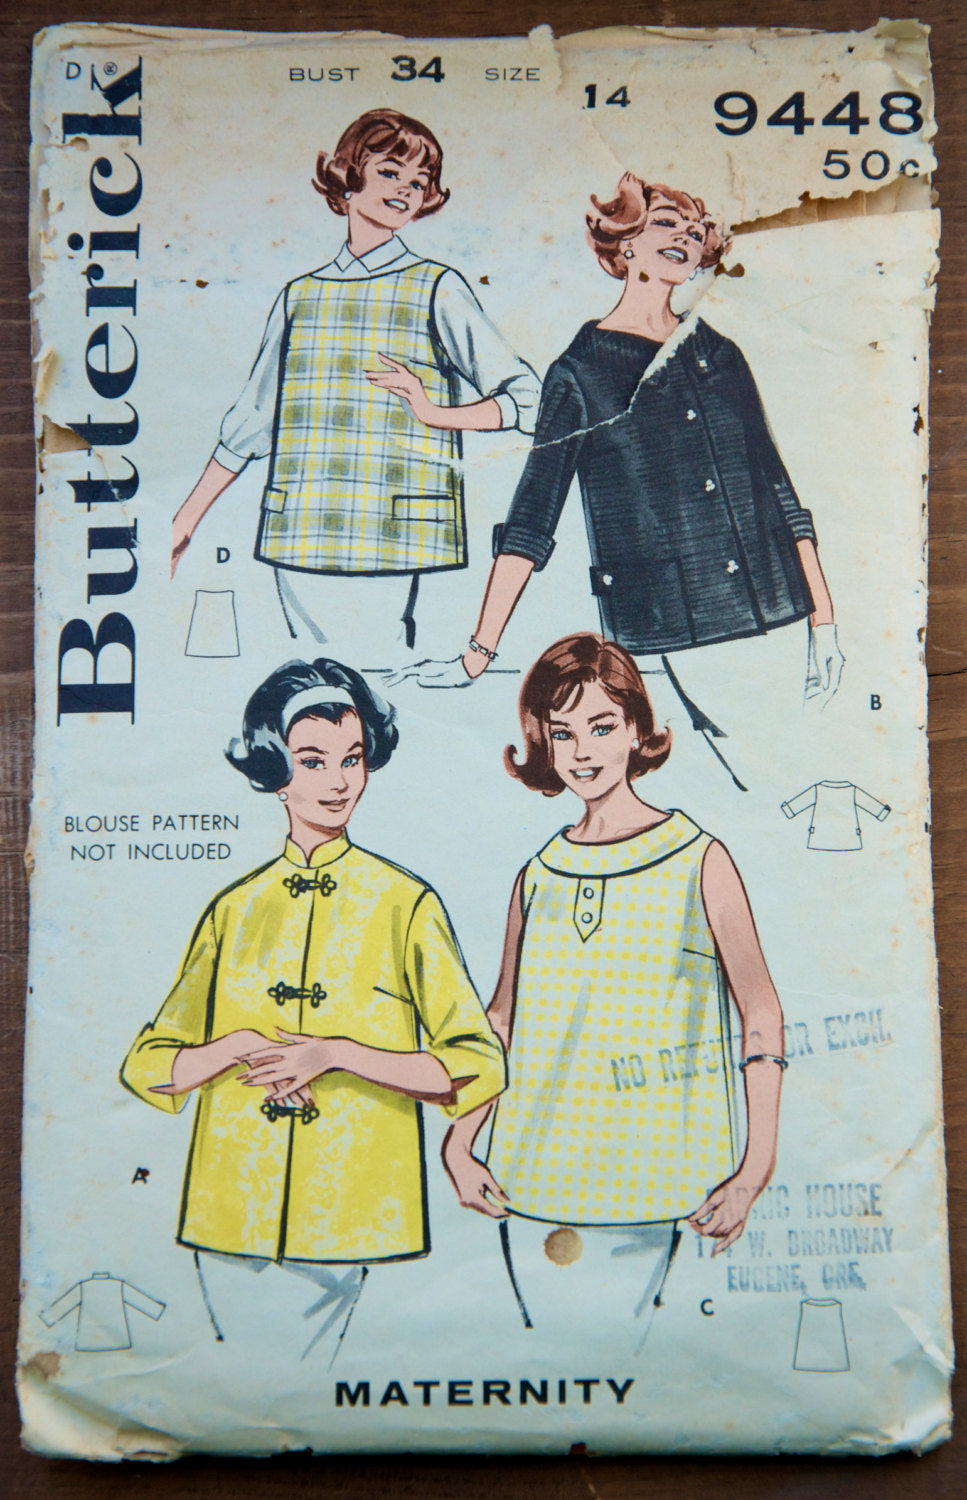 1960's Butterick Maternity Blouse pattern - Bust 34